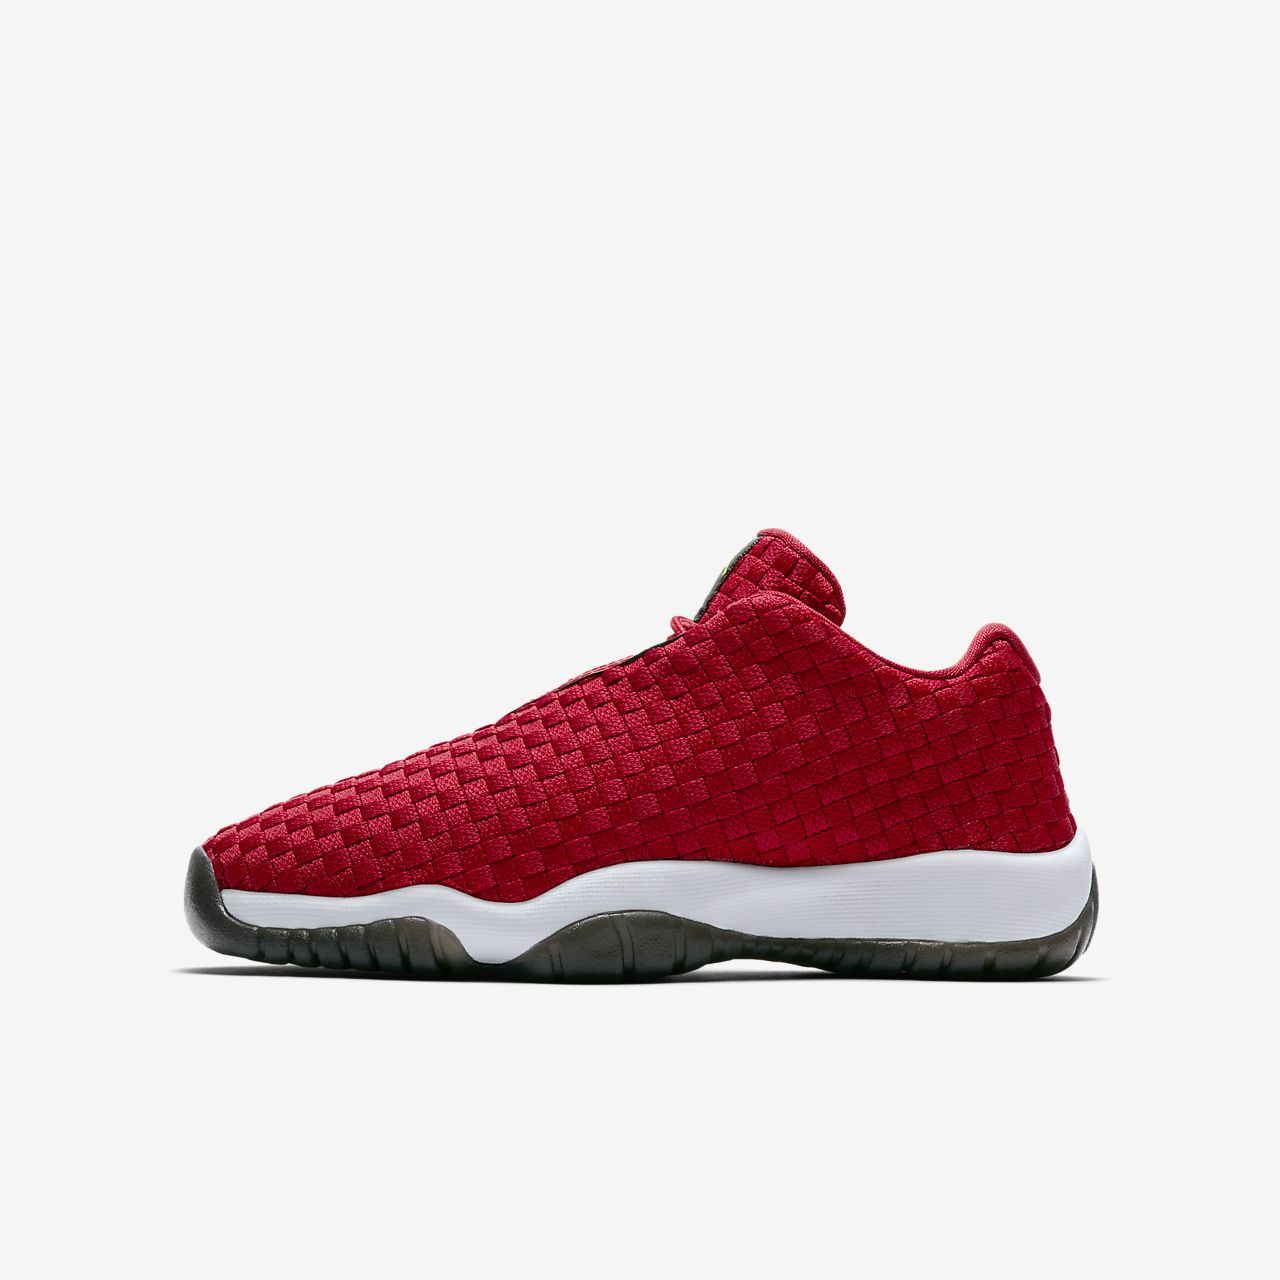 d1a5debabd27b9 ... sweden air jordan future low kids shoe a3287 30ce1 ...